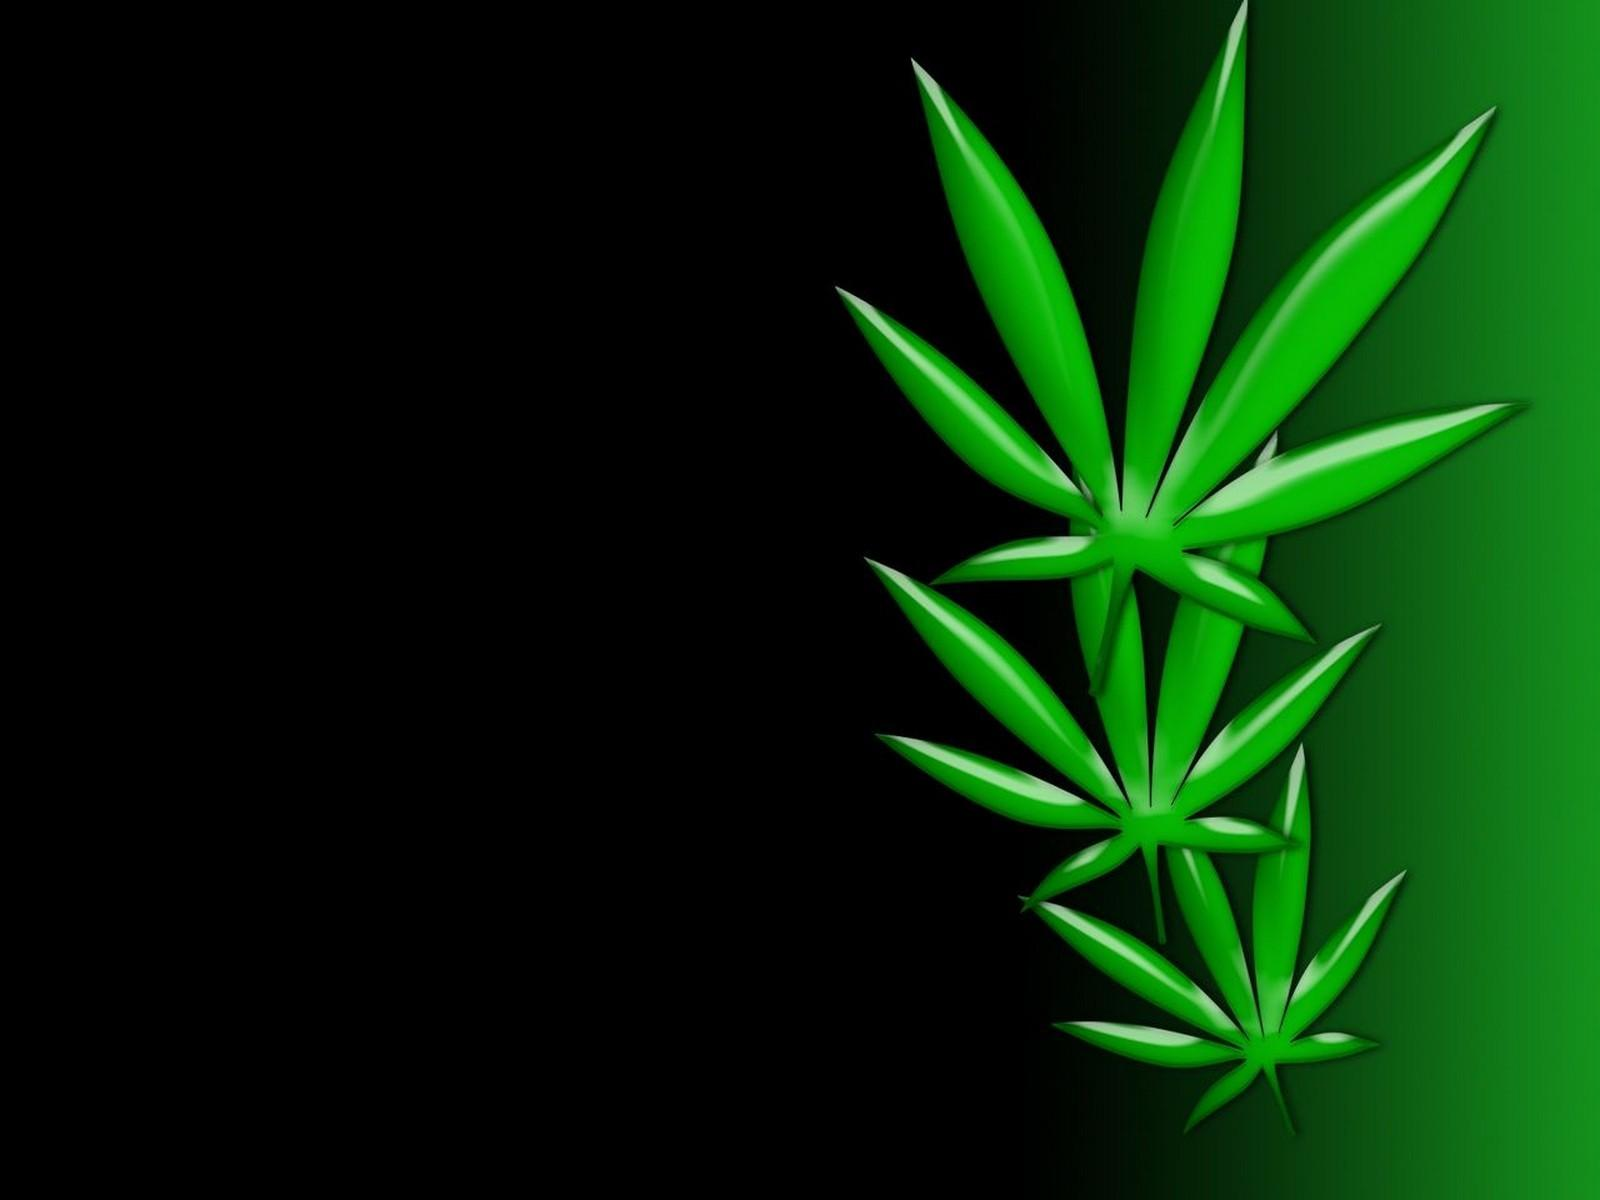 Weed Wallpapers Hd – Epic Wallpaperz